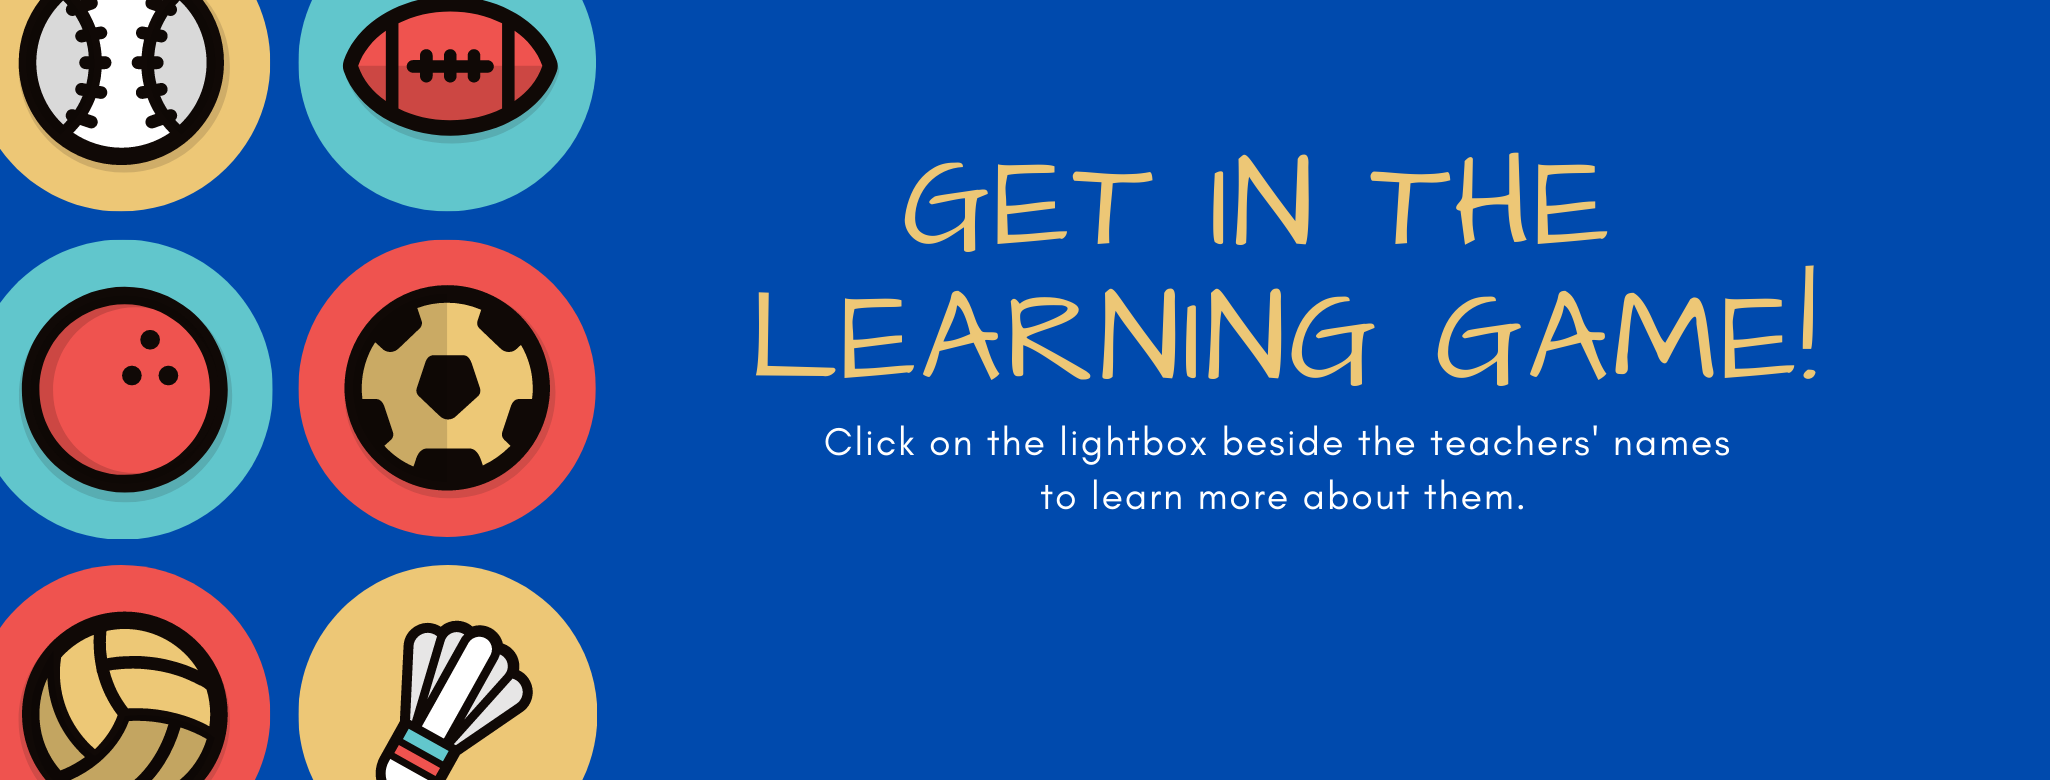 Click the lightboxes to learn more about the teachers